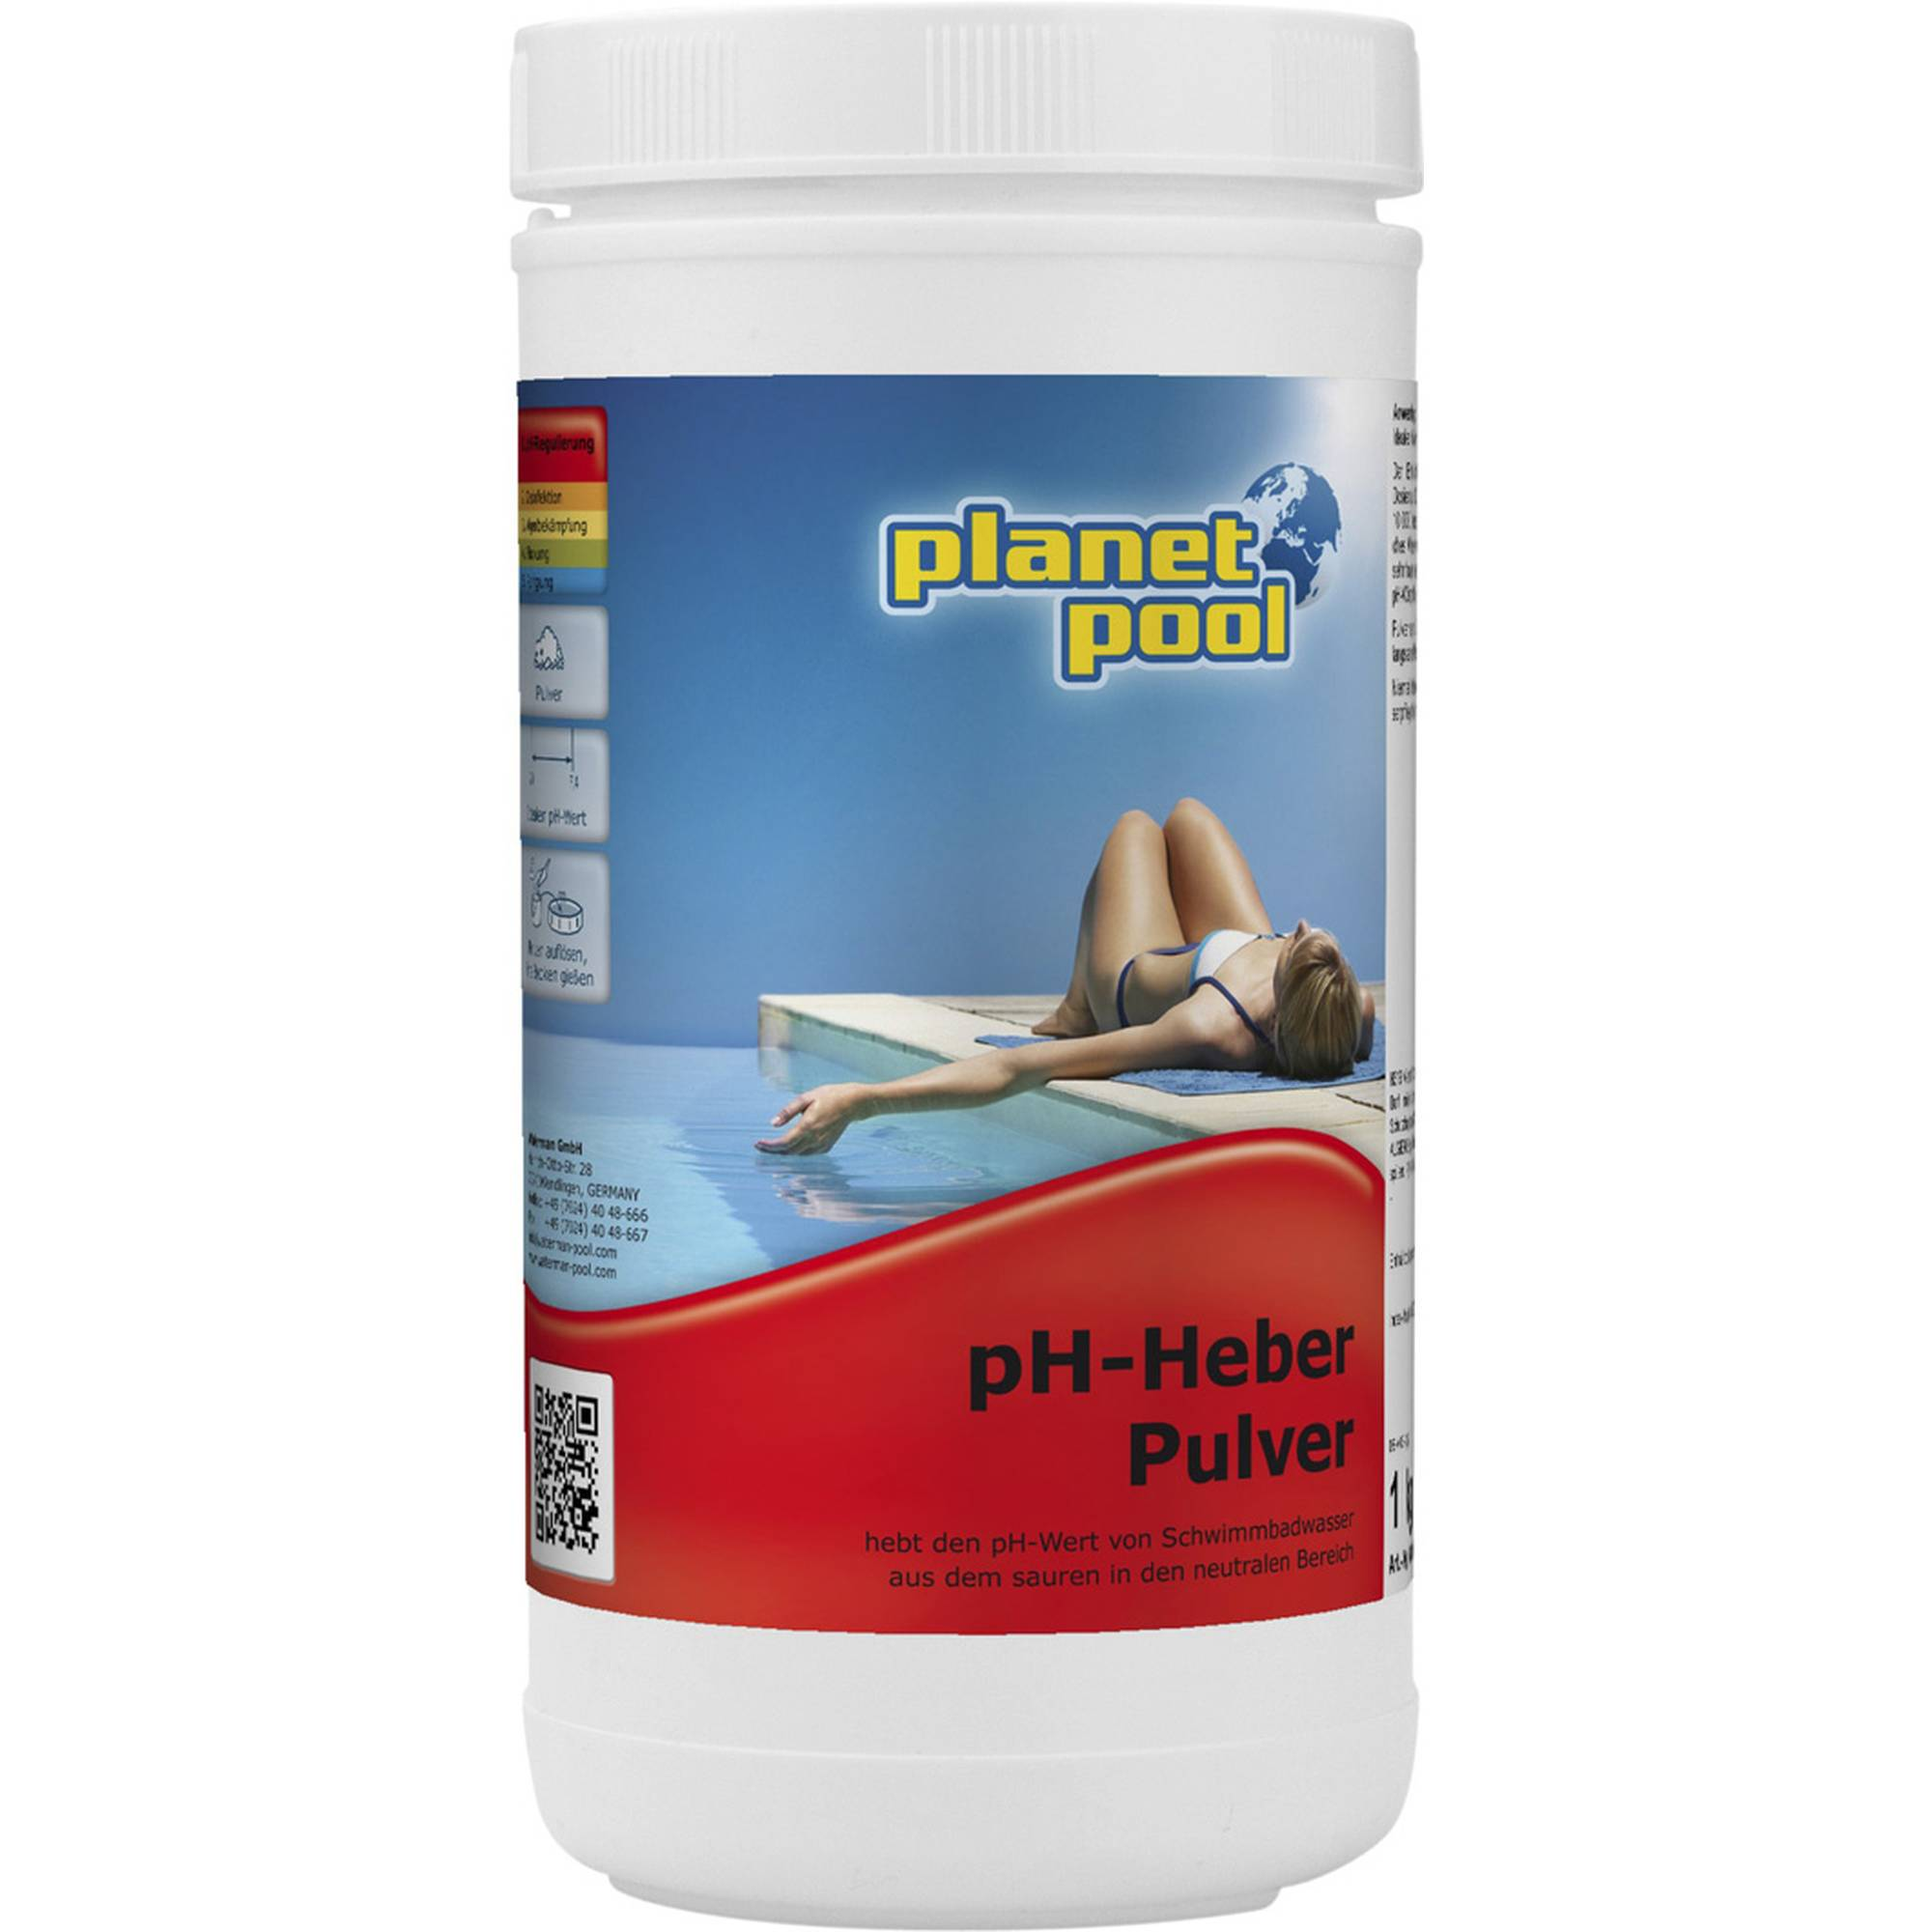 PLANET POOL pH-plus Granulat 1 kg